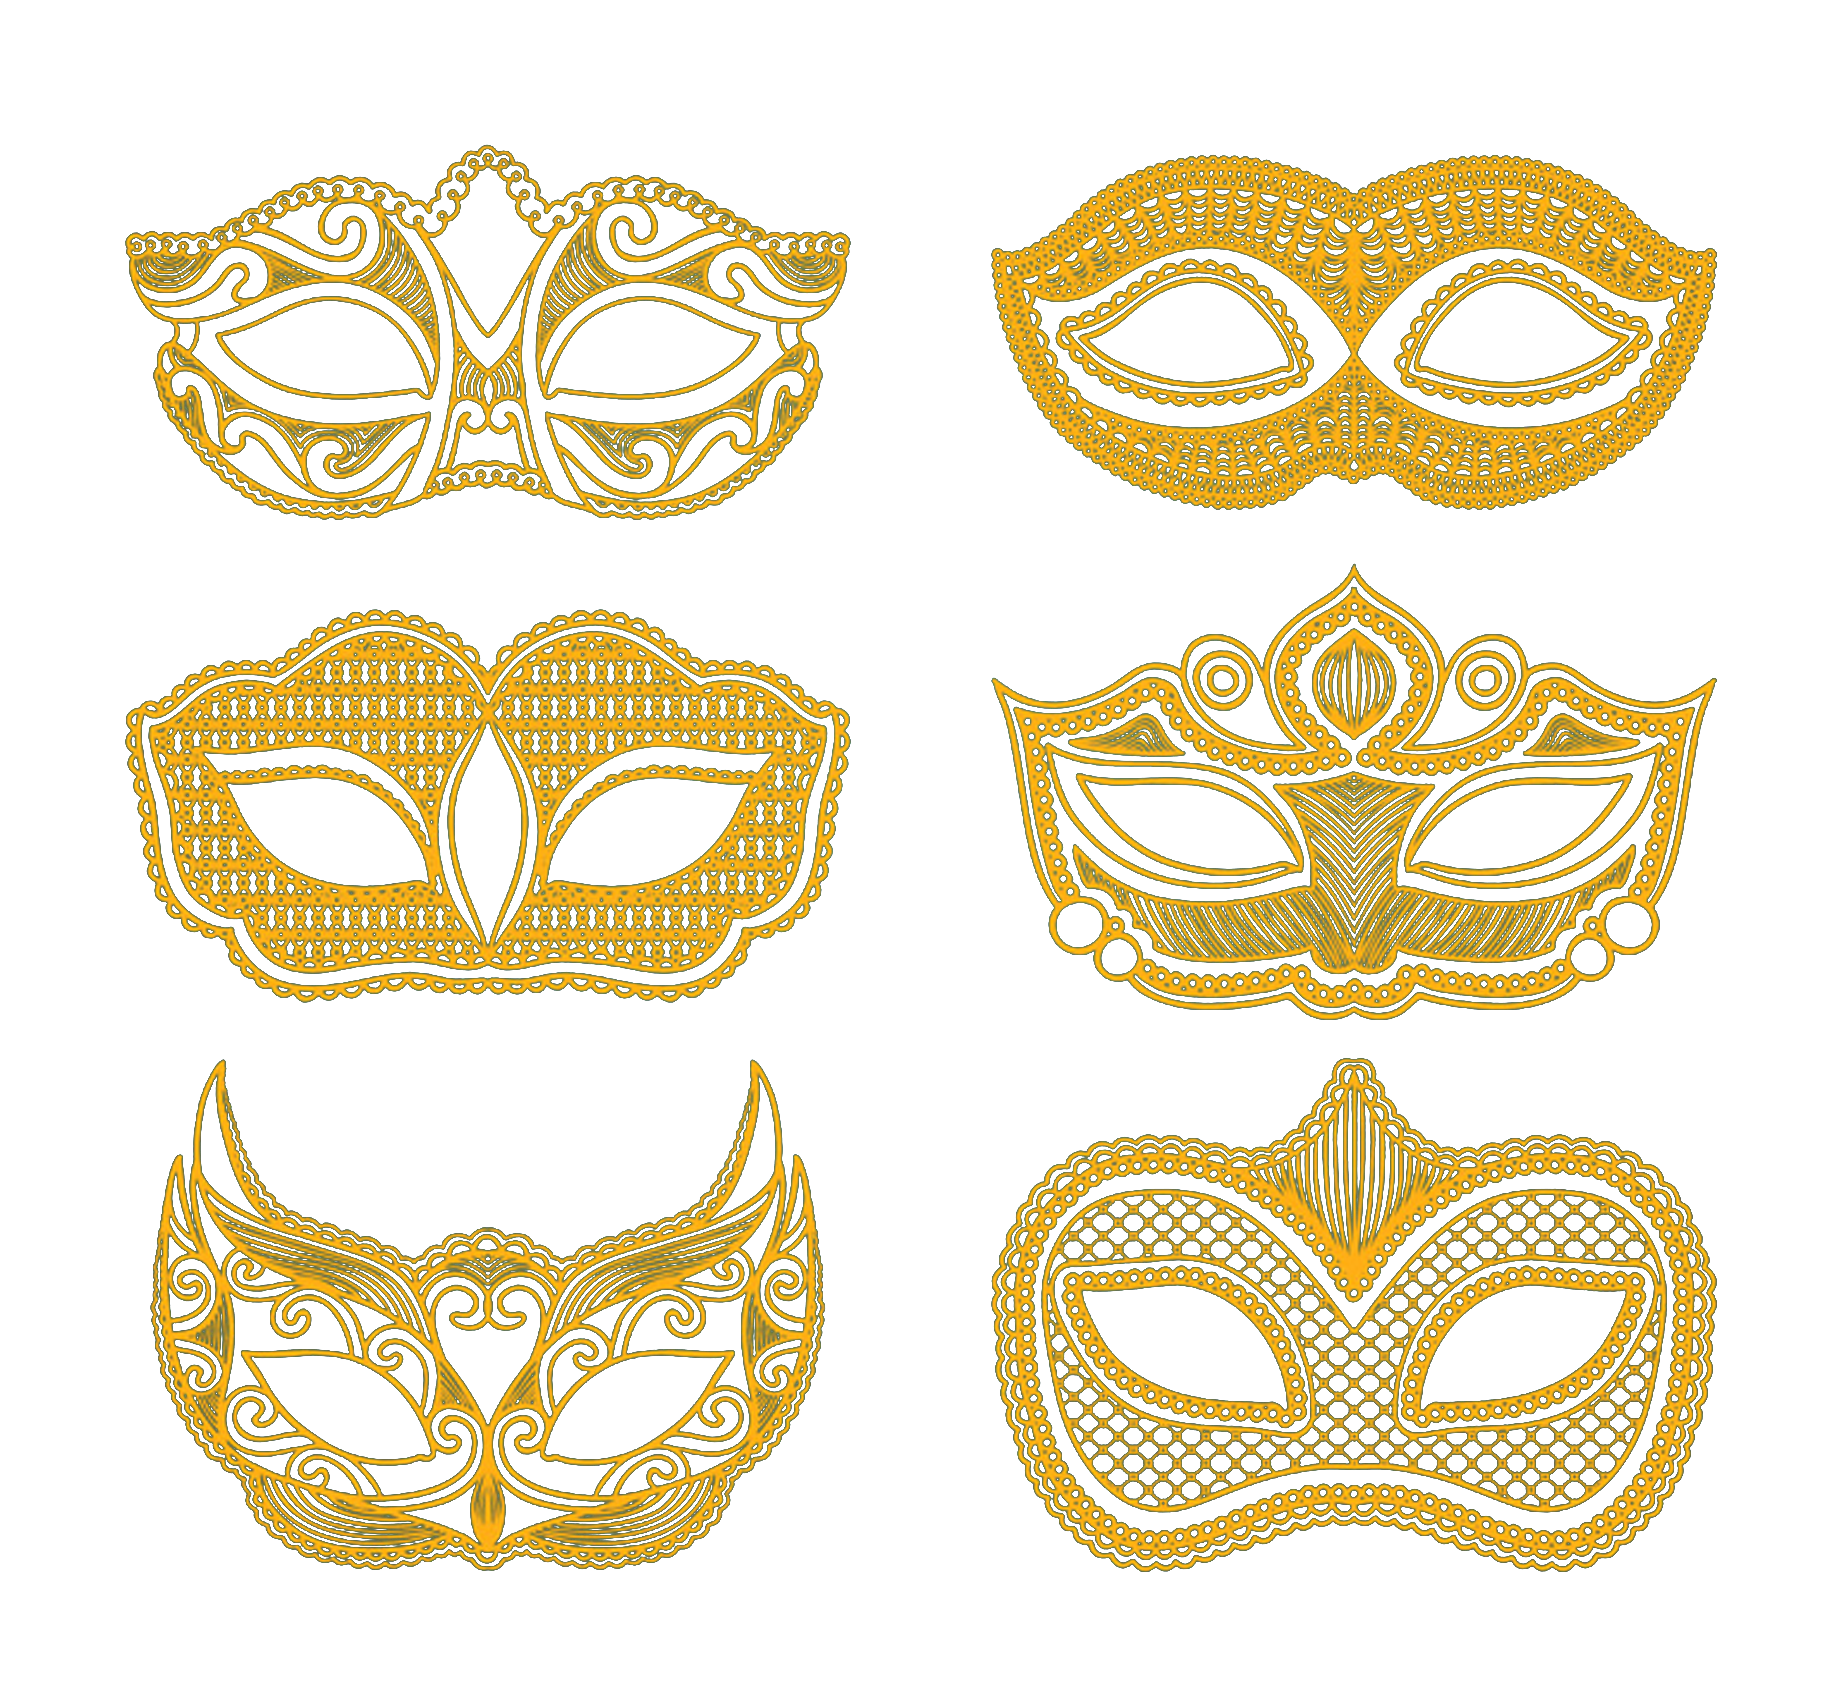 Masquerade ball dance png. Mask party transprent download